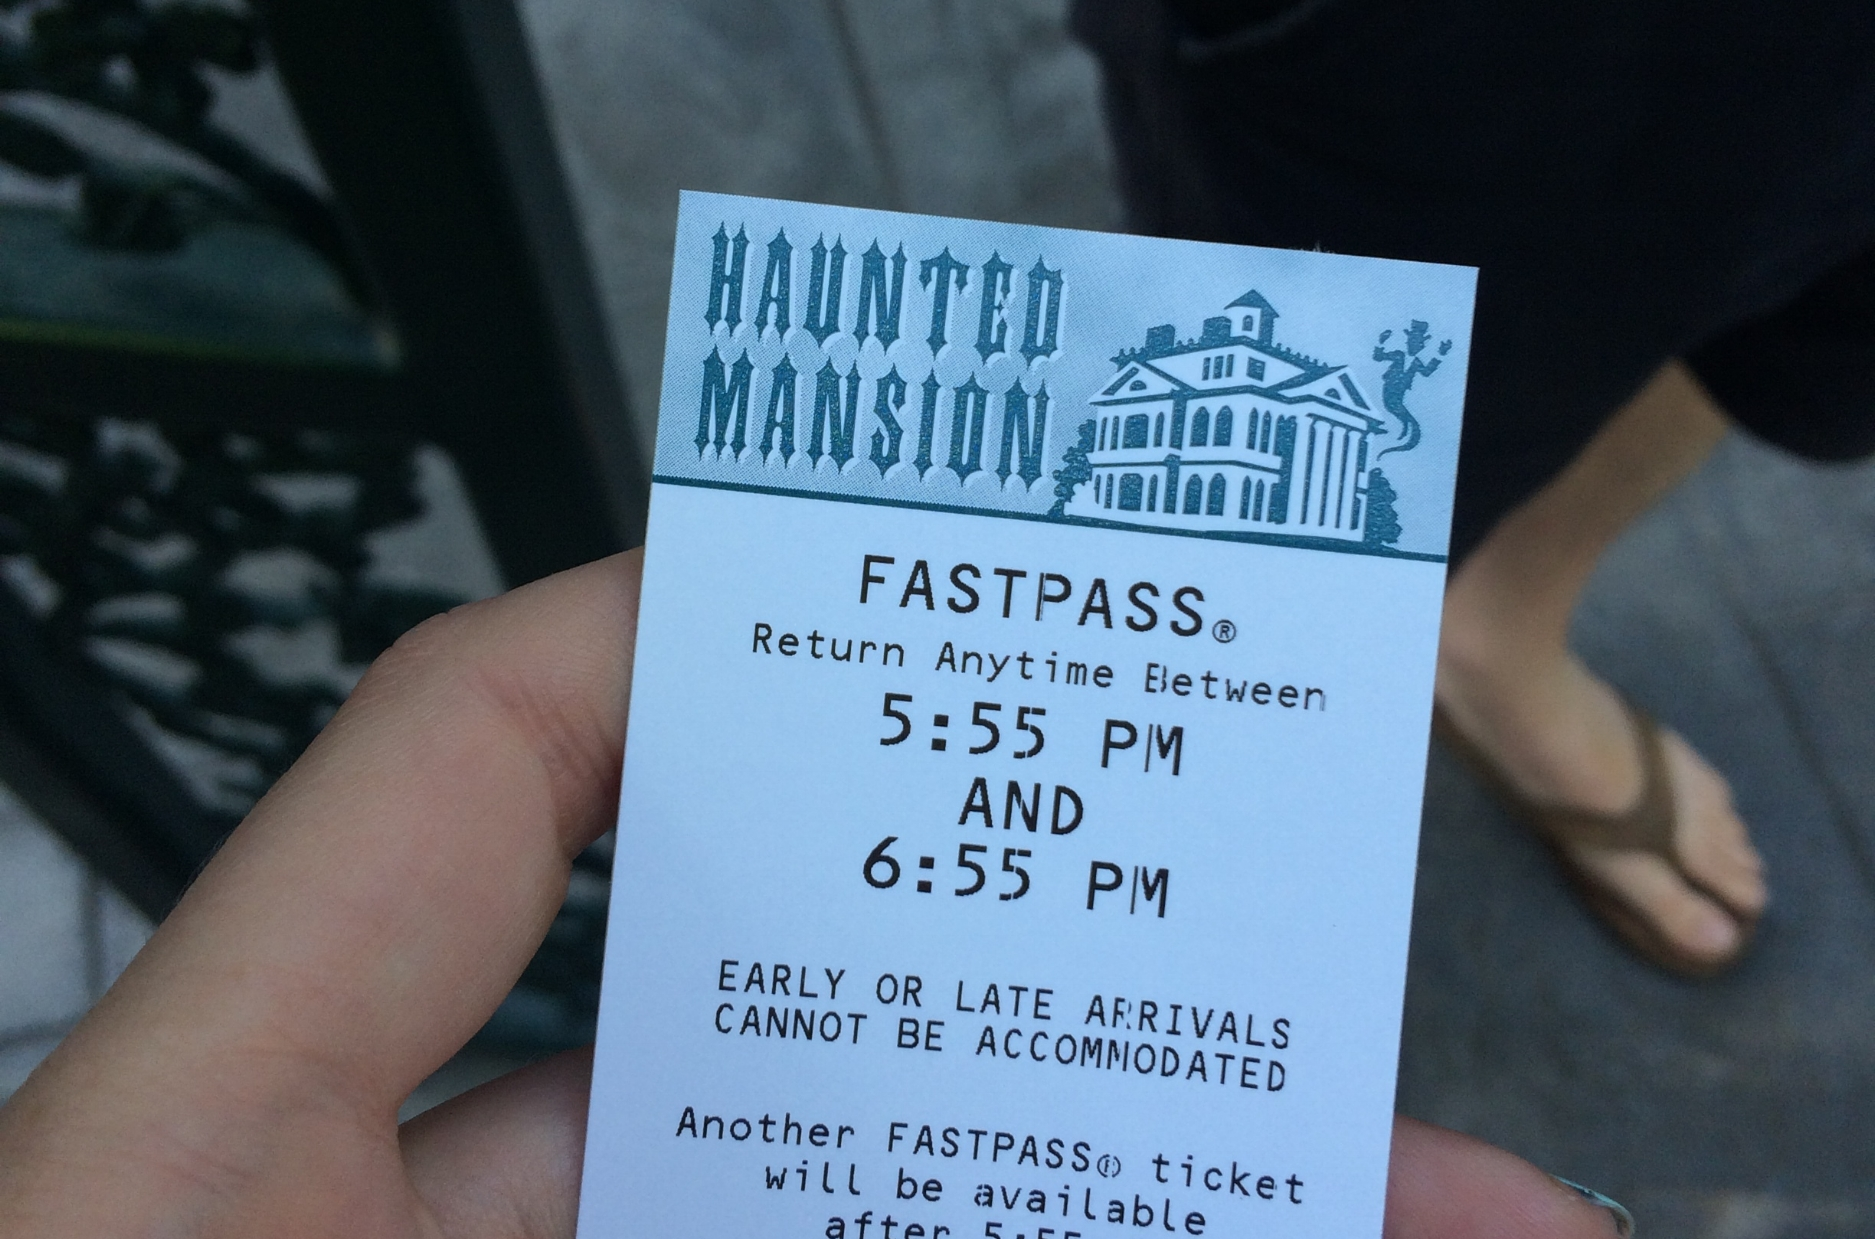 haunted mansion fastpass